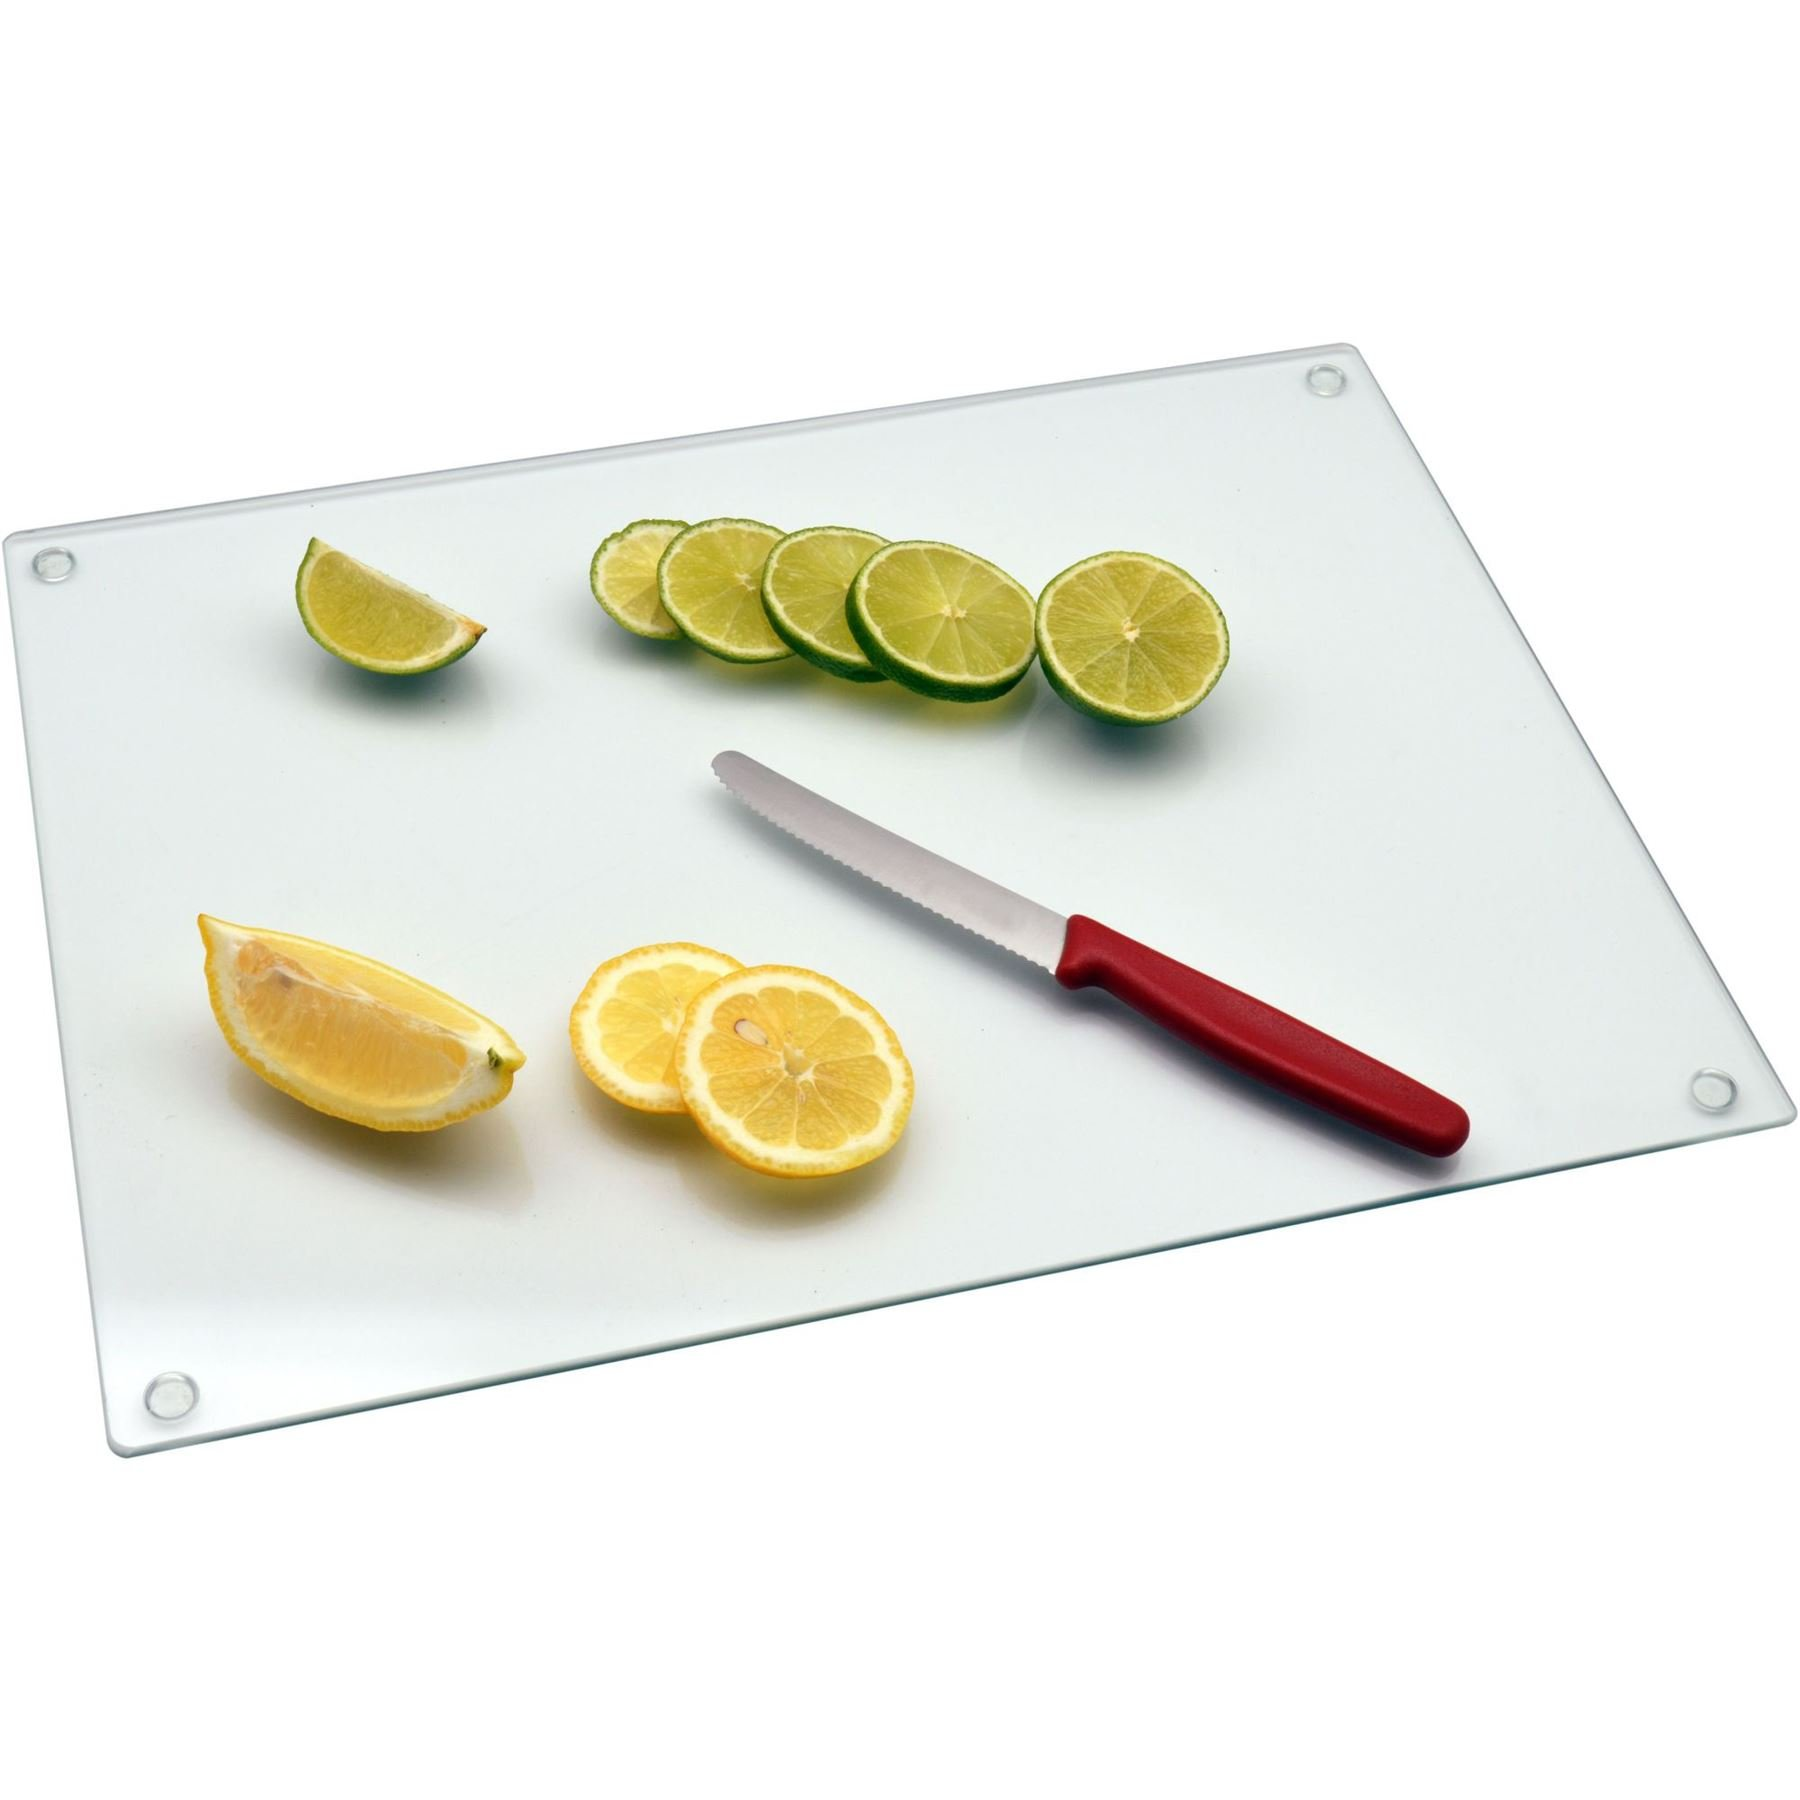 Clear Frosted Glass Large Kitchen Worktop Saver Protector Premium Glass Chopping Board